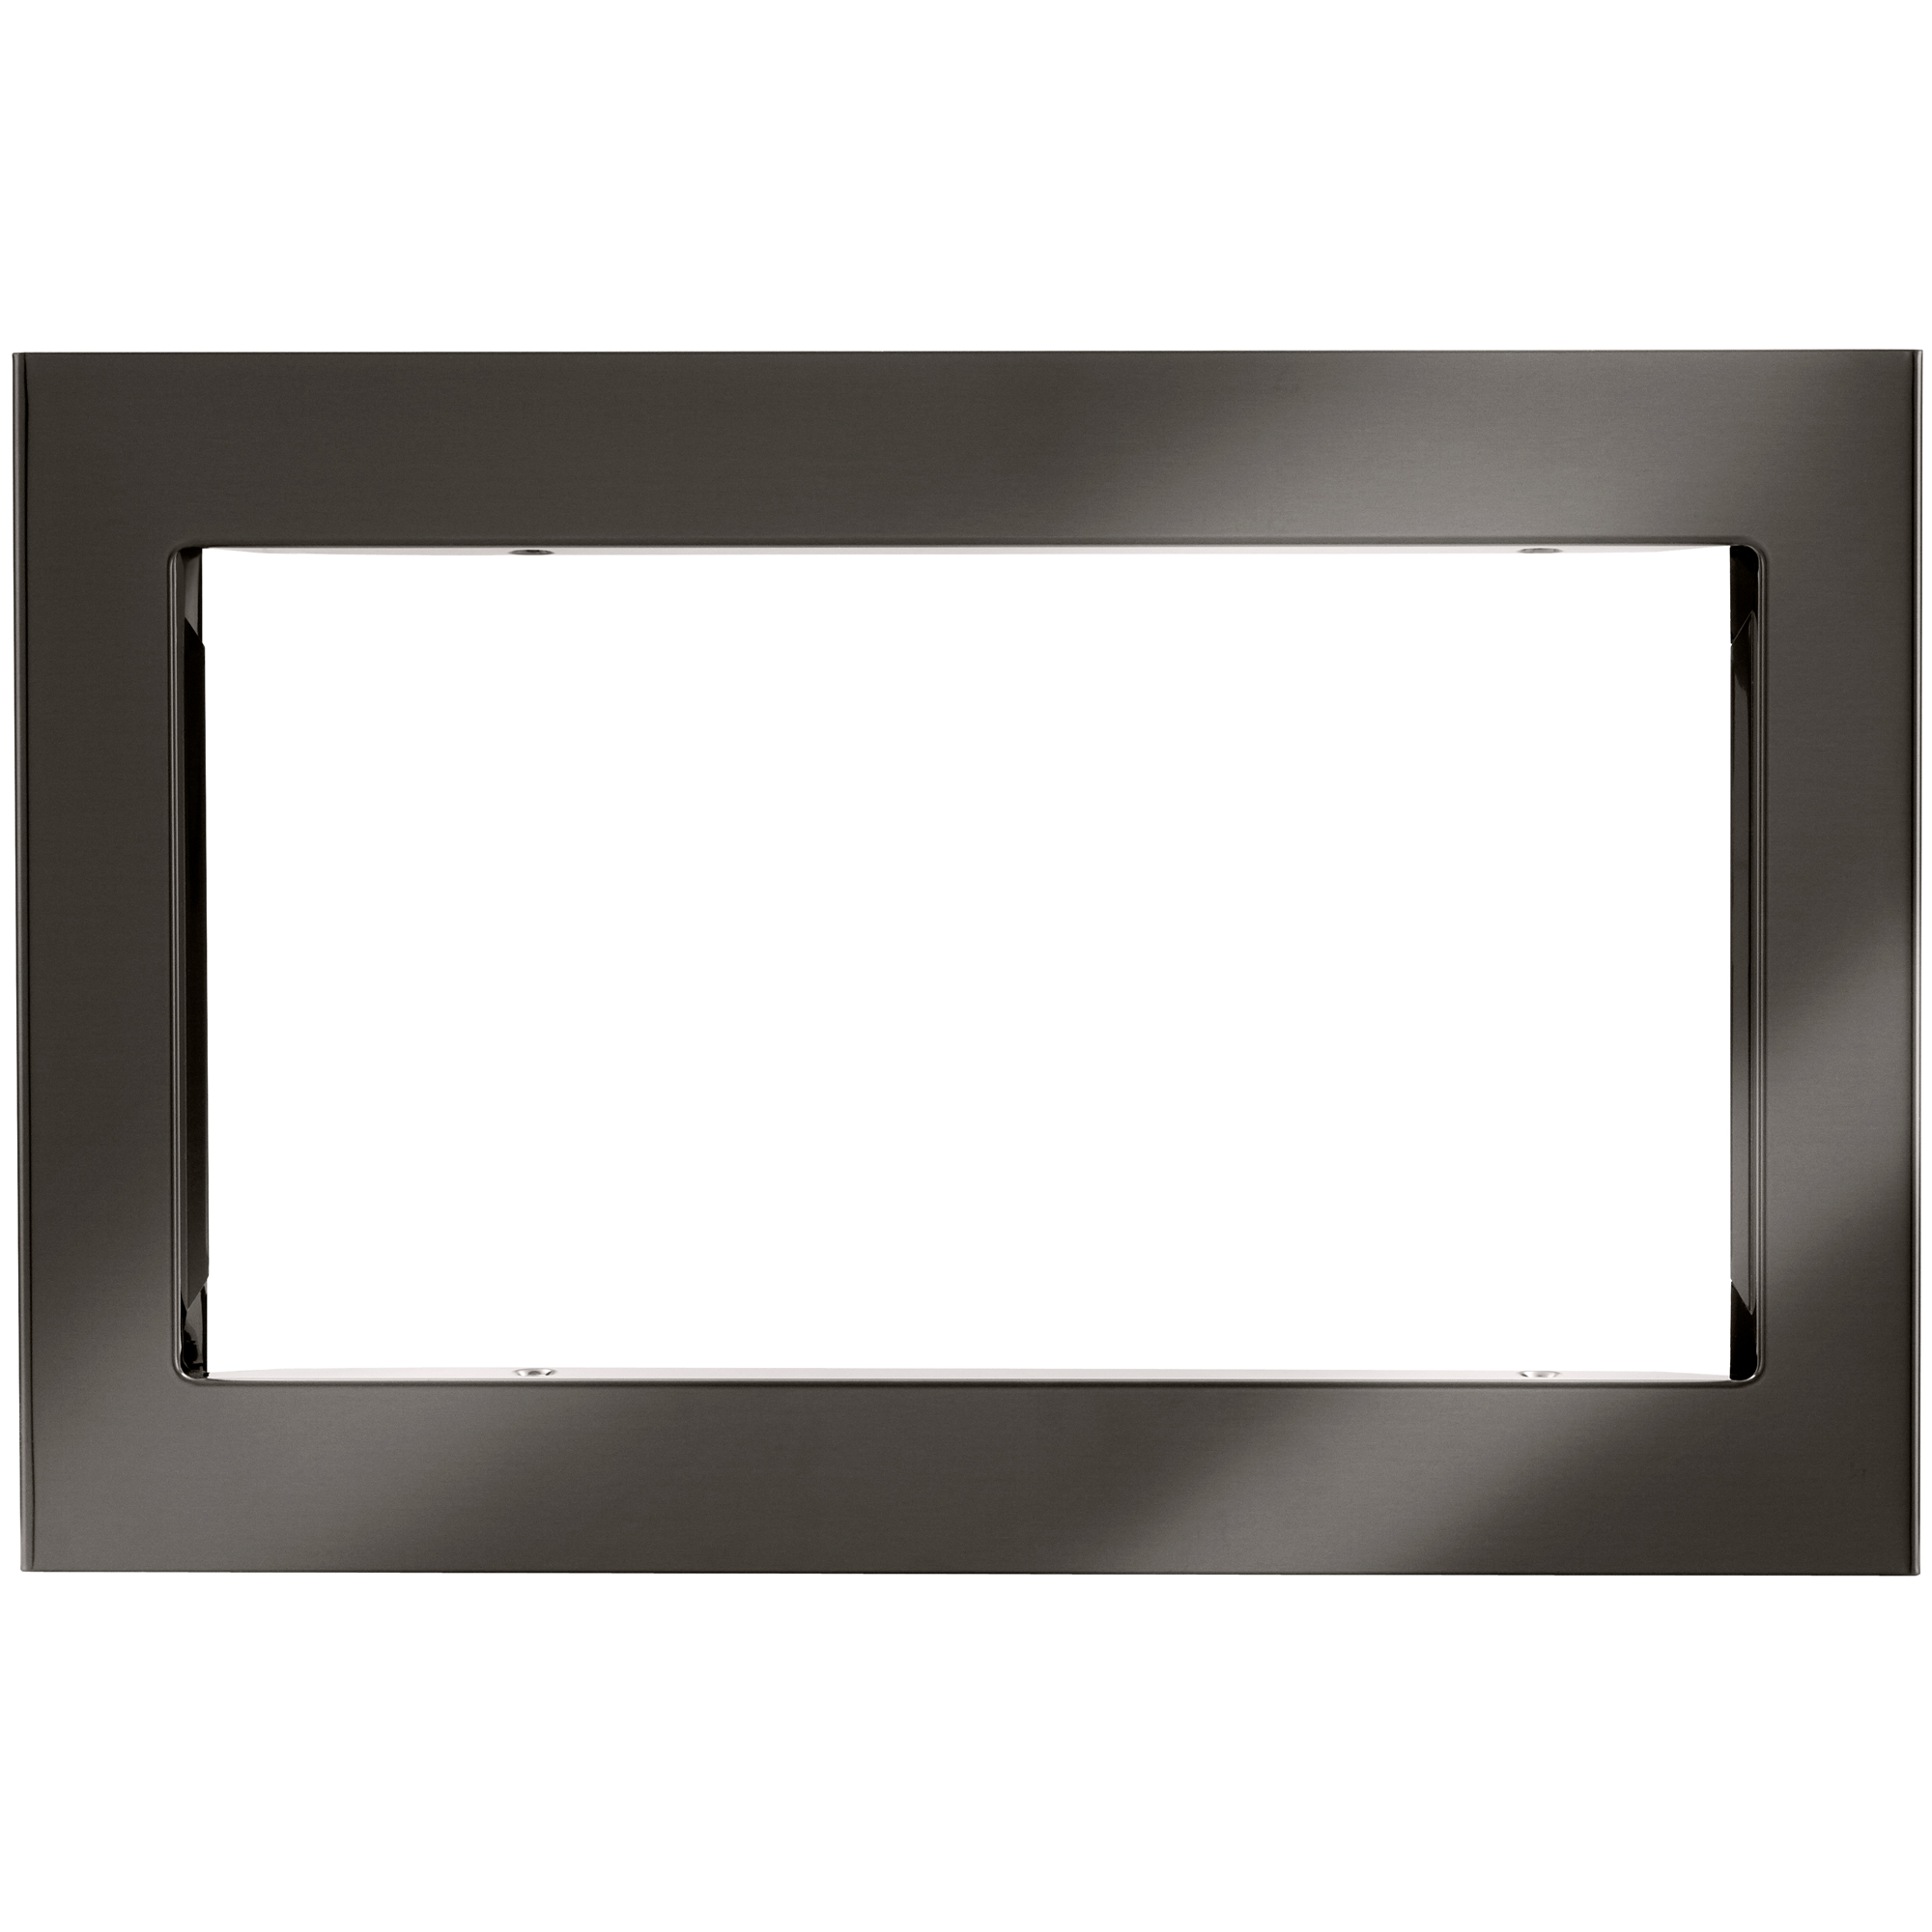 Image of LG MK2030NBD Trim Kit for Microwave - Black Stainless Steel